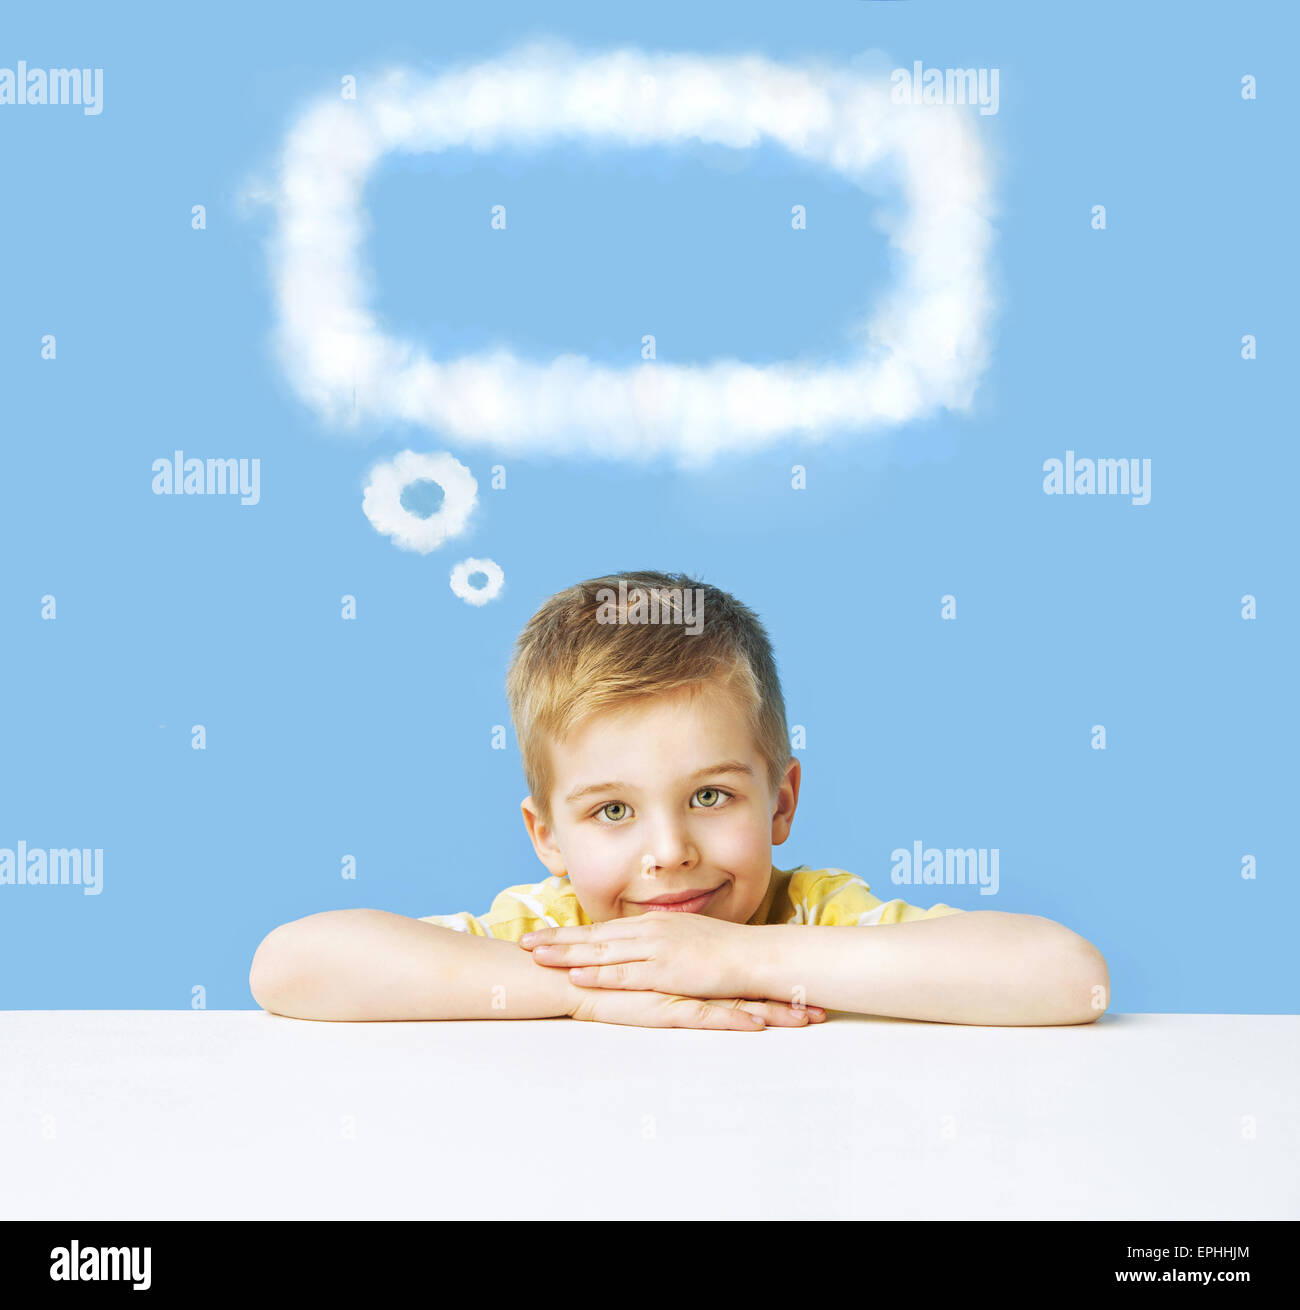 Little boy with an interesting thought - Stock Image